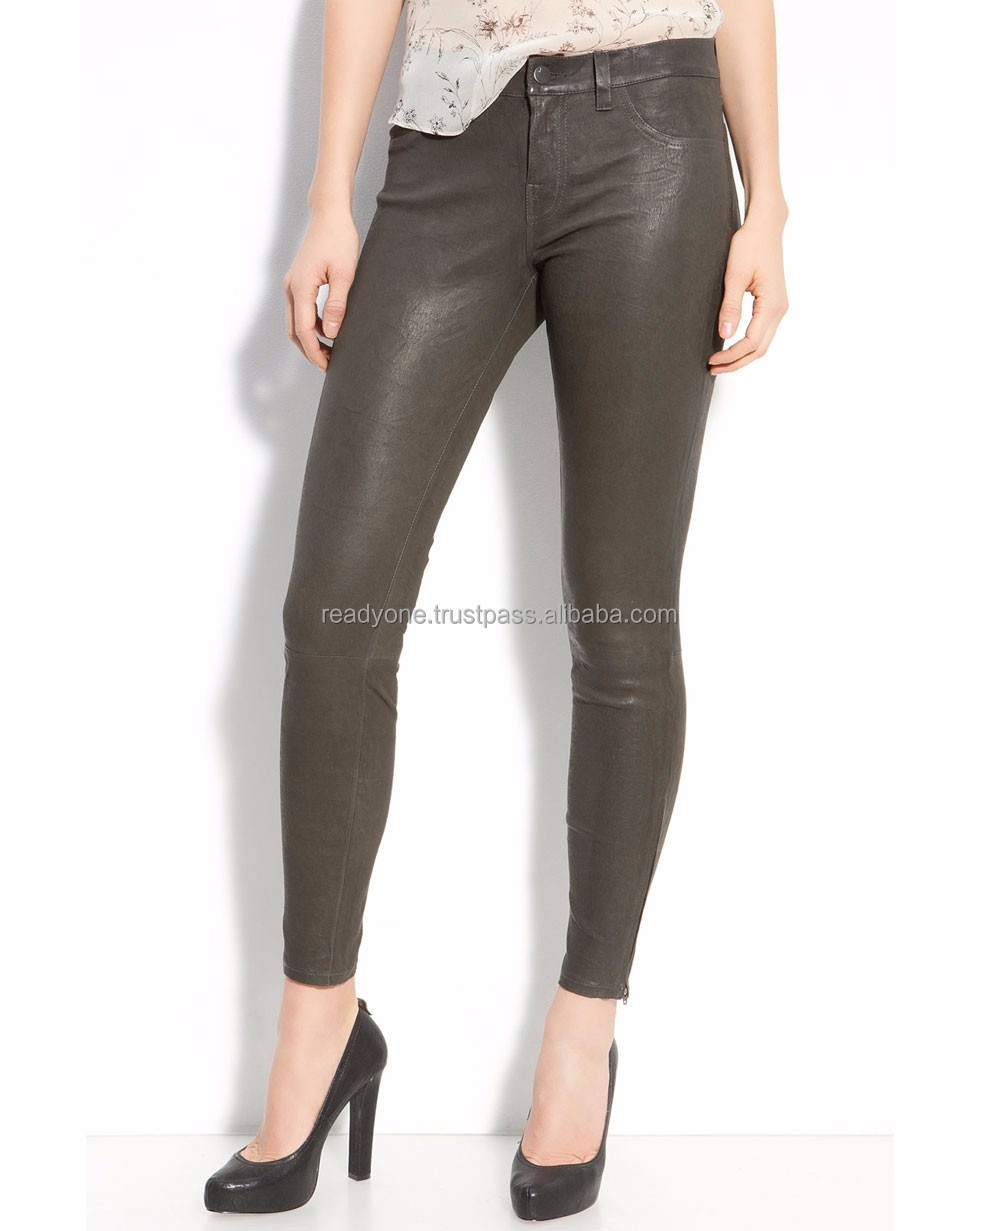 Wholesale Women Sexy Faux Leather Fitness Pants Of Girls Xxx China Photos